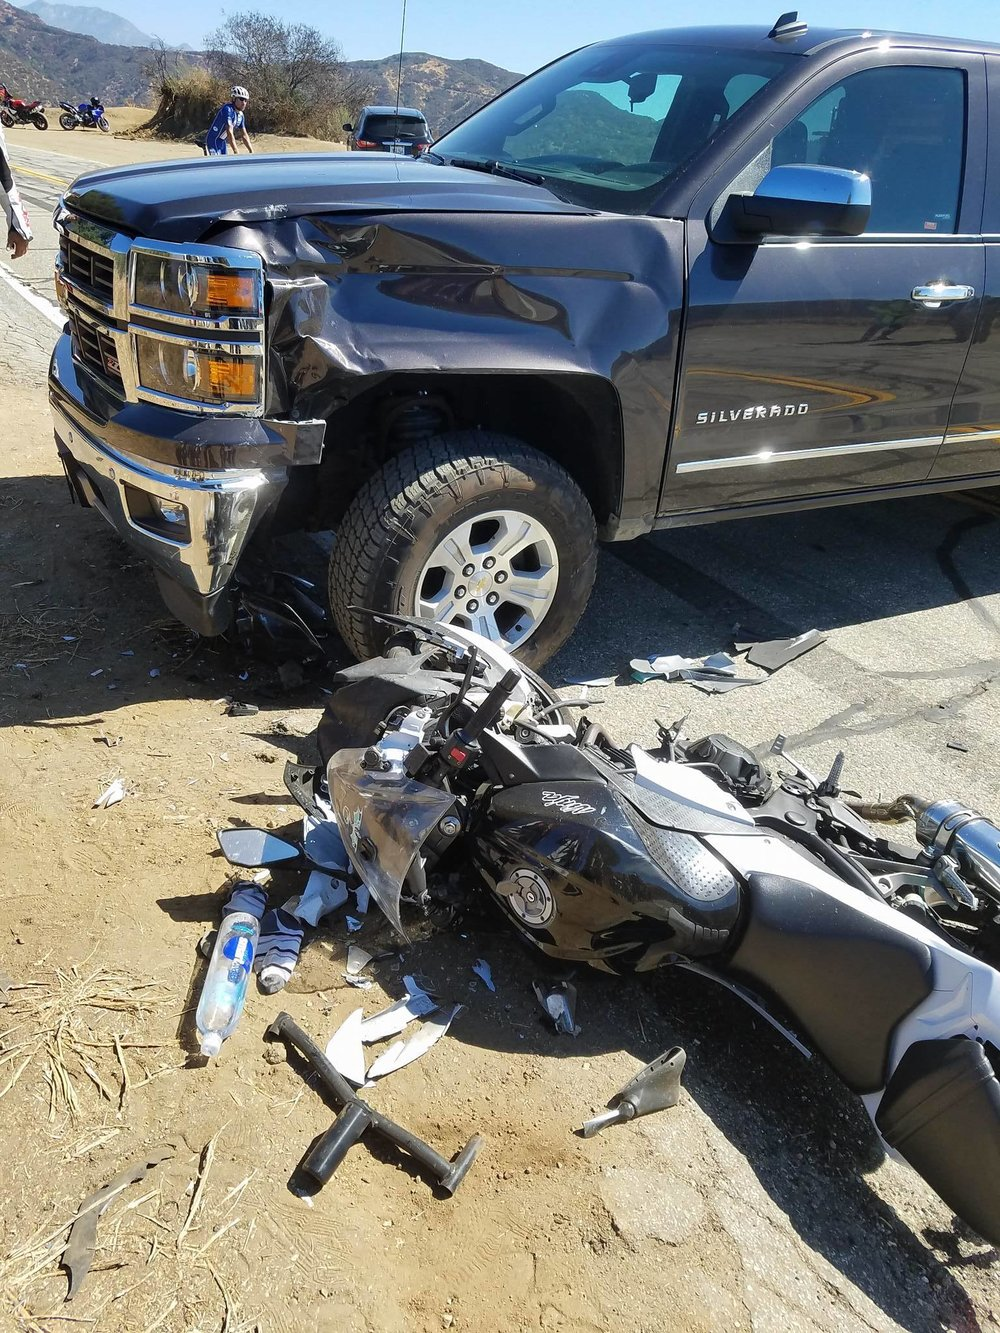 (Pictured above, a motorcycle accident that The Adrian Law Firm handled. The Adrian Law Firm recovered $250,000.00 for the motorcycle rider who was cut off by the driver of a Chevrolet Silverado on Glendora Mountain Road)